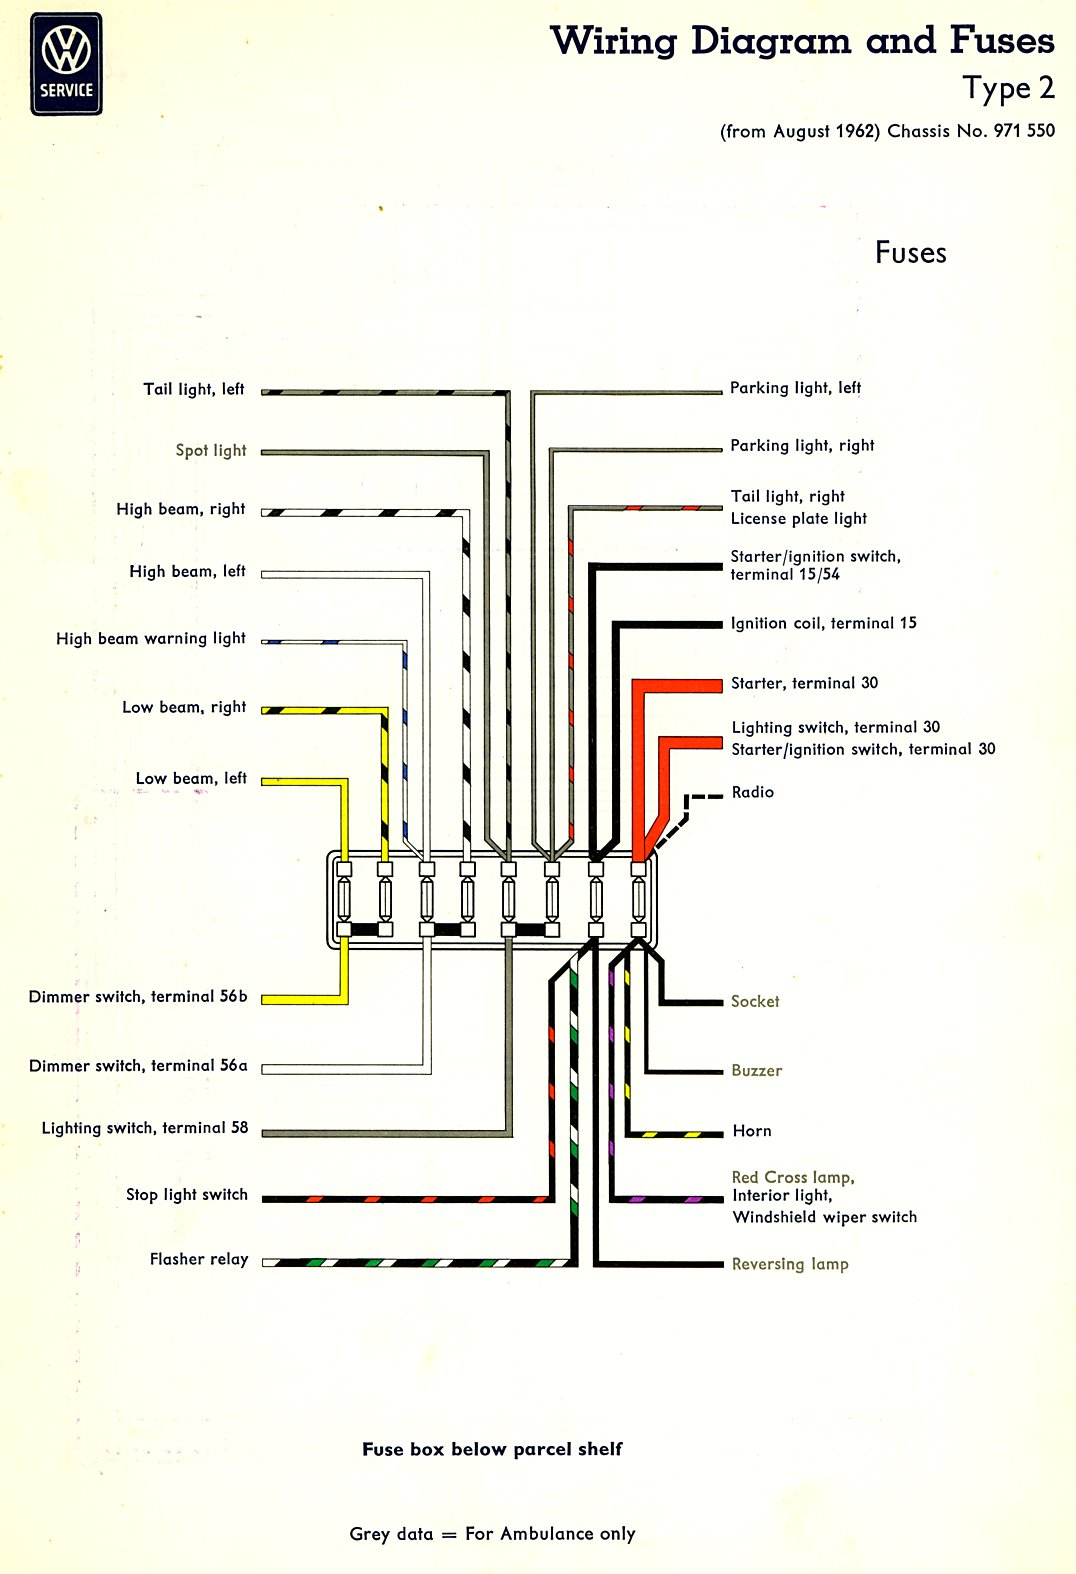 Type 2 Wiring Diagrams 1985 Chevy Glow Plug